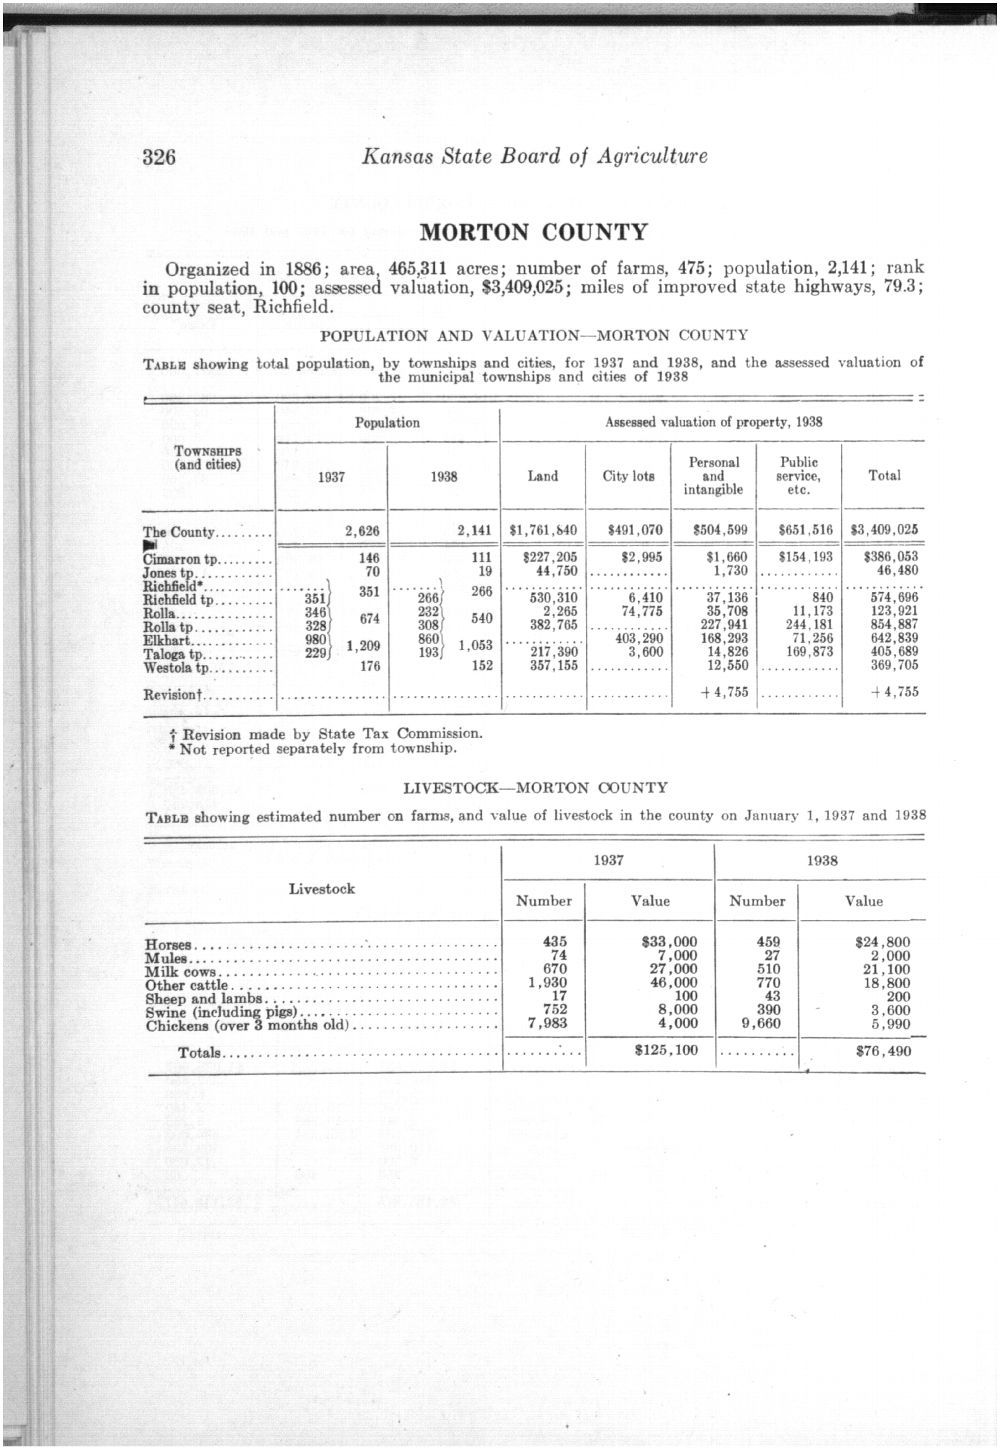 Thirty-first Biennial Report, Statistics by county showing population, acreage, production, and livestock, 1937-1938 - 326